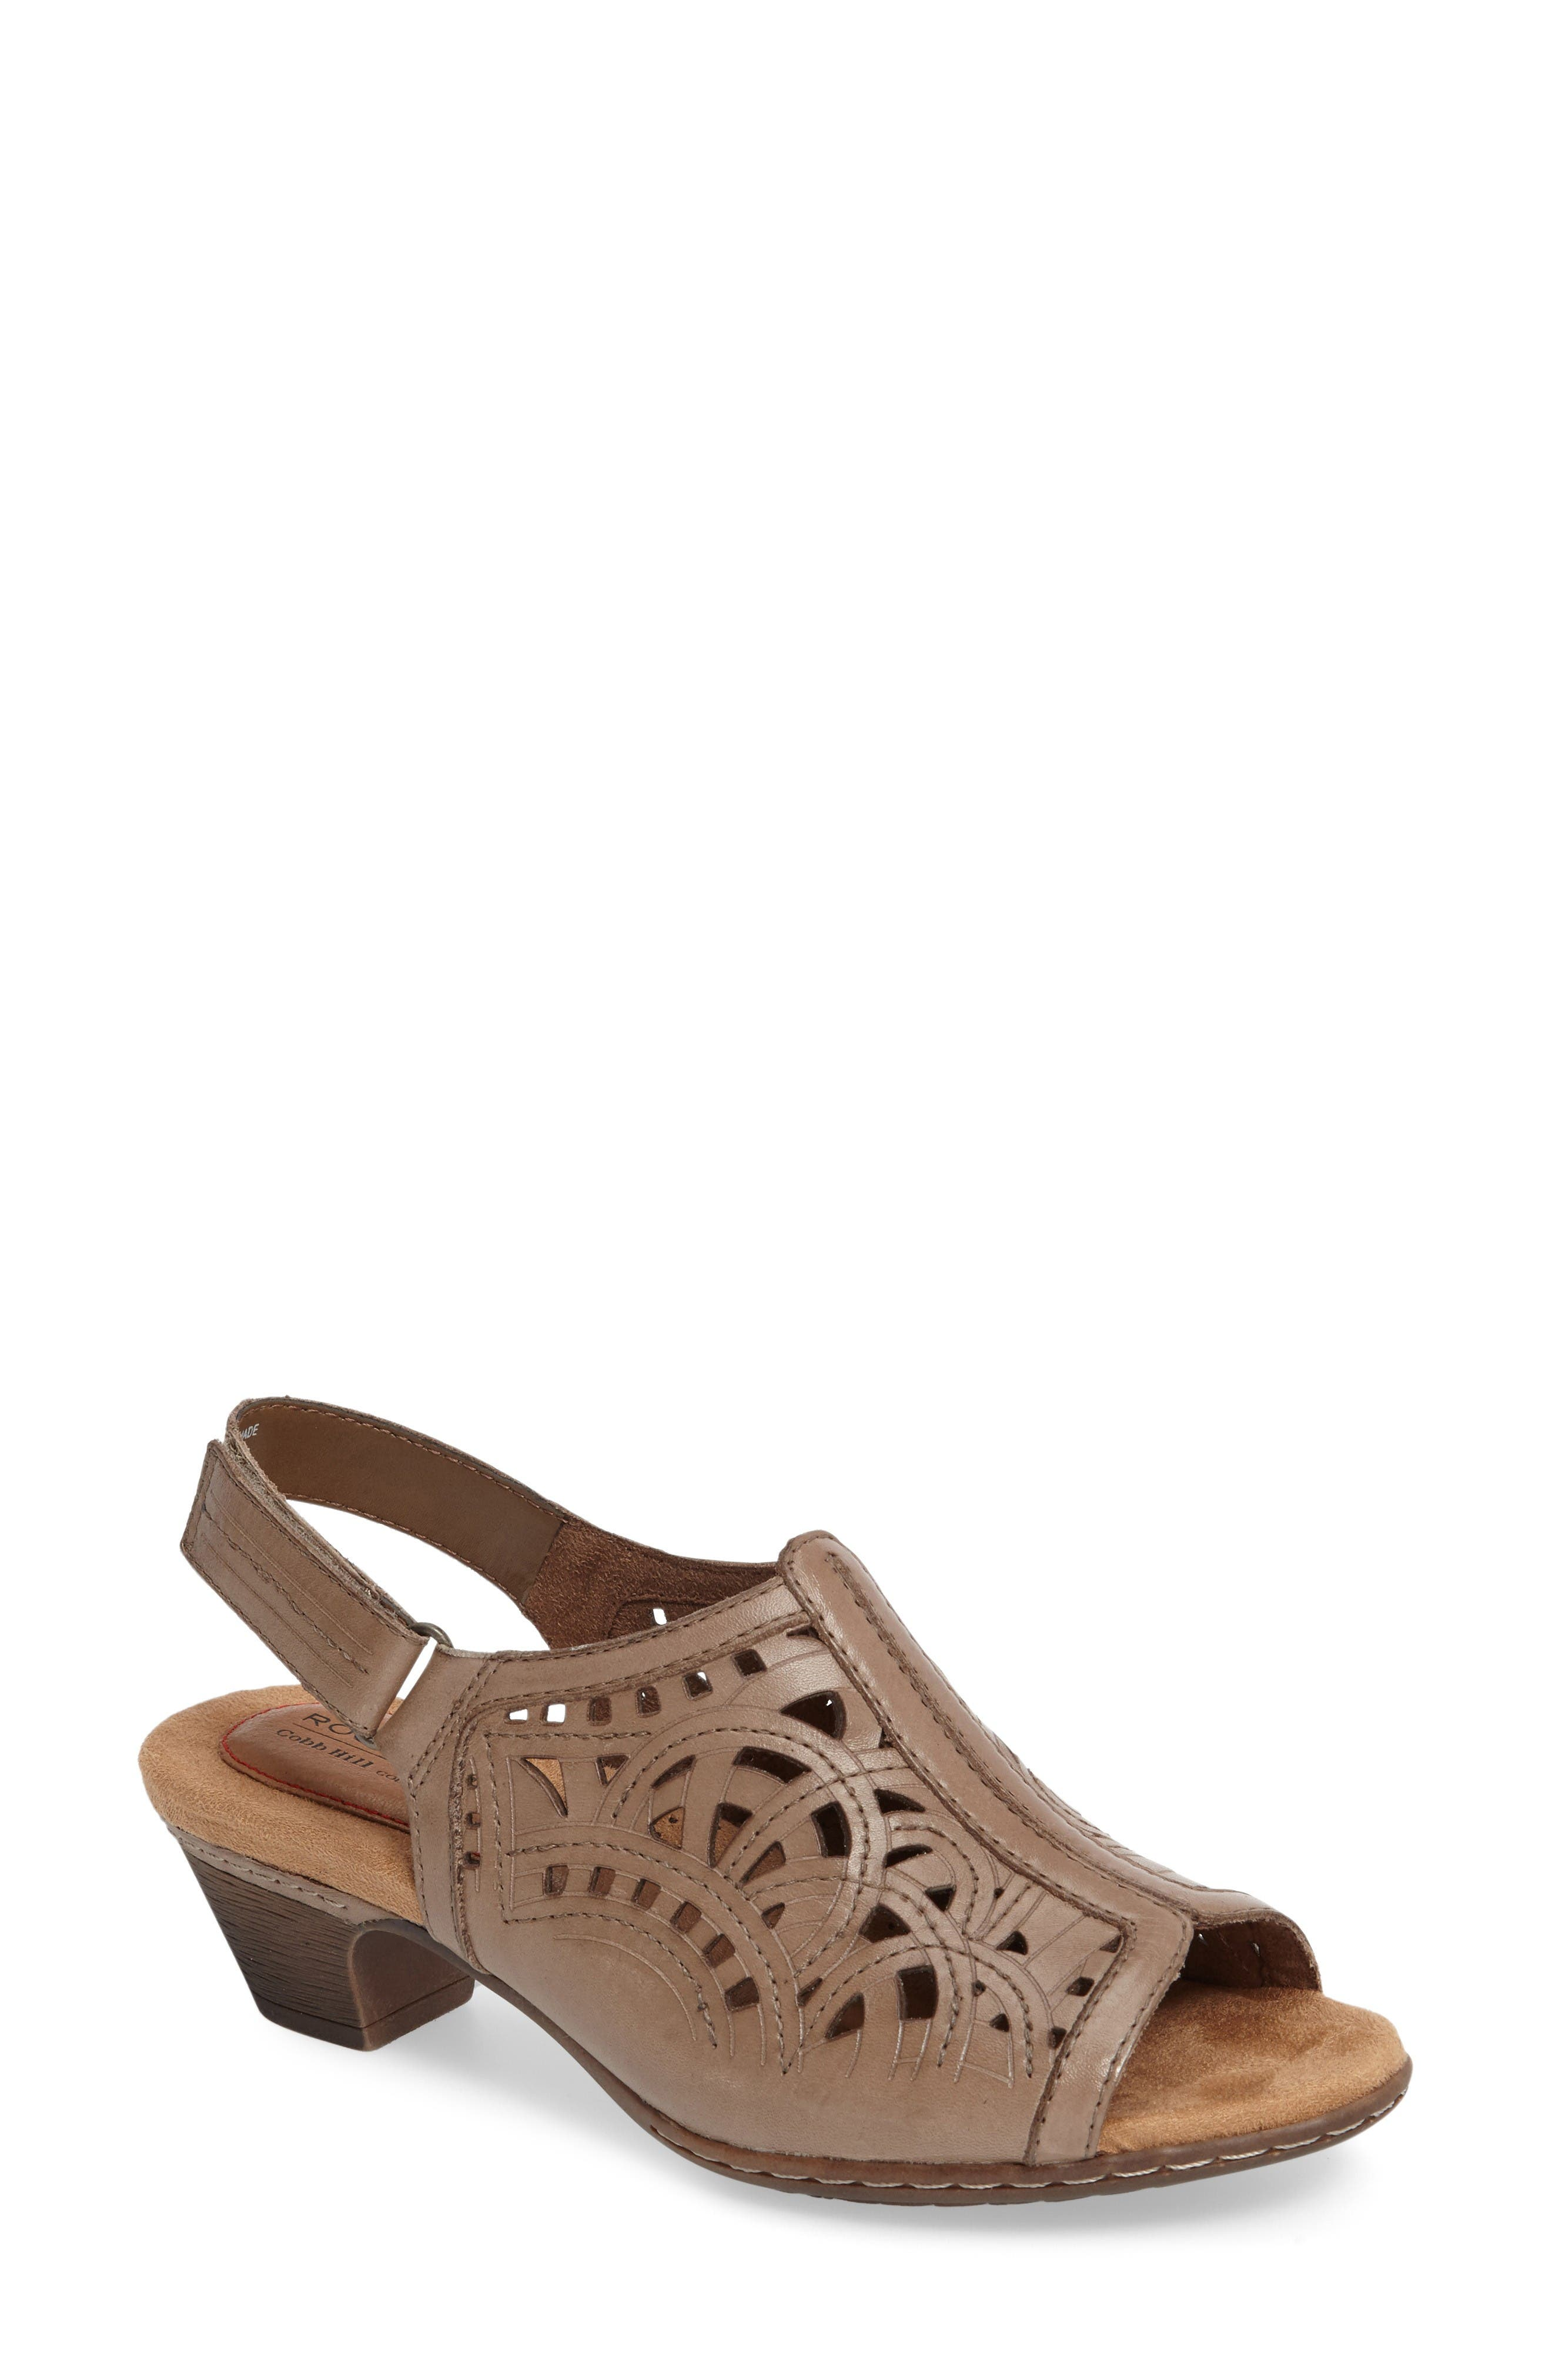 Abbott Slingback Sandal,                         Main,                         color, Khaki Leather